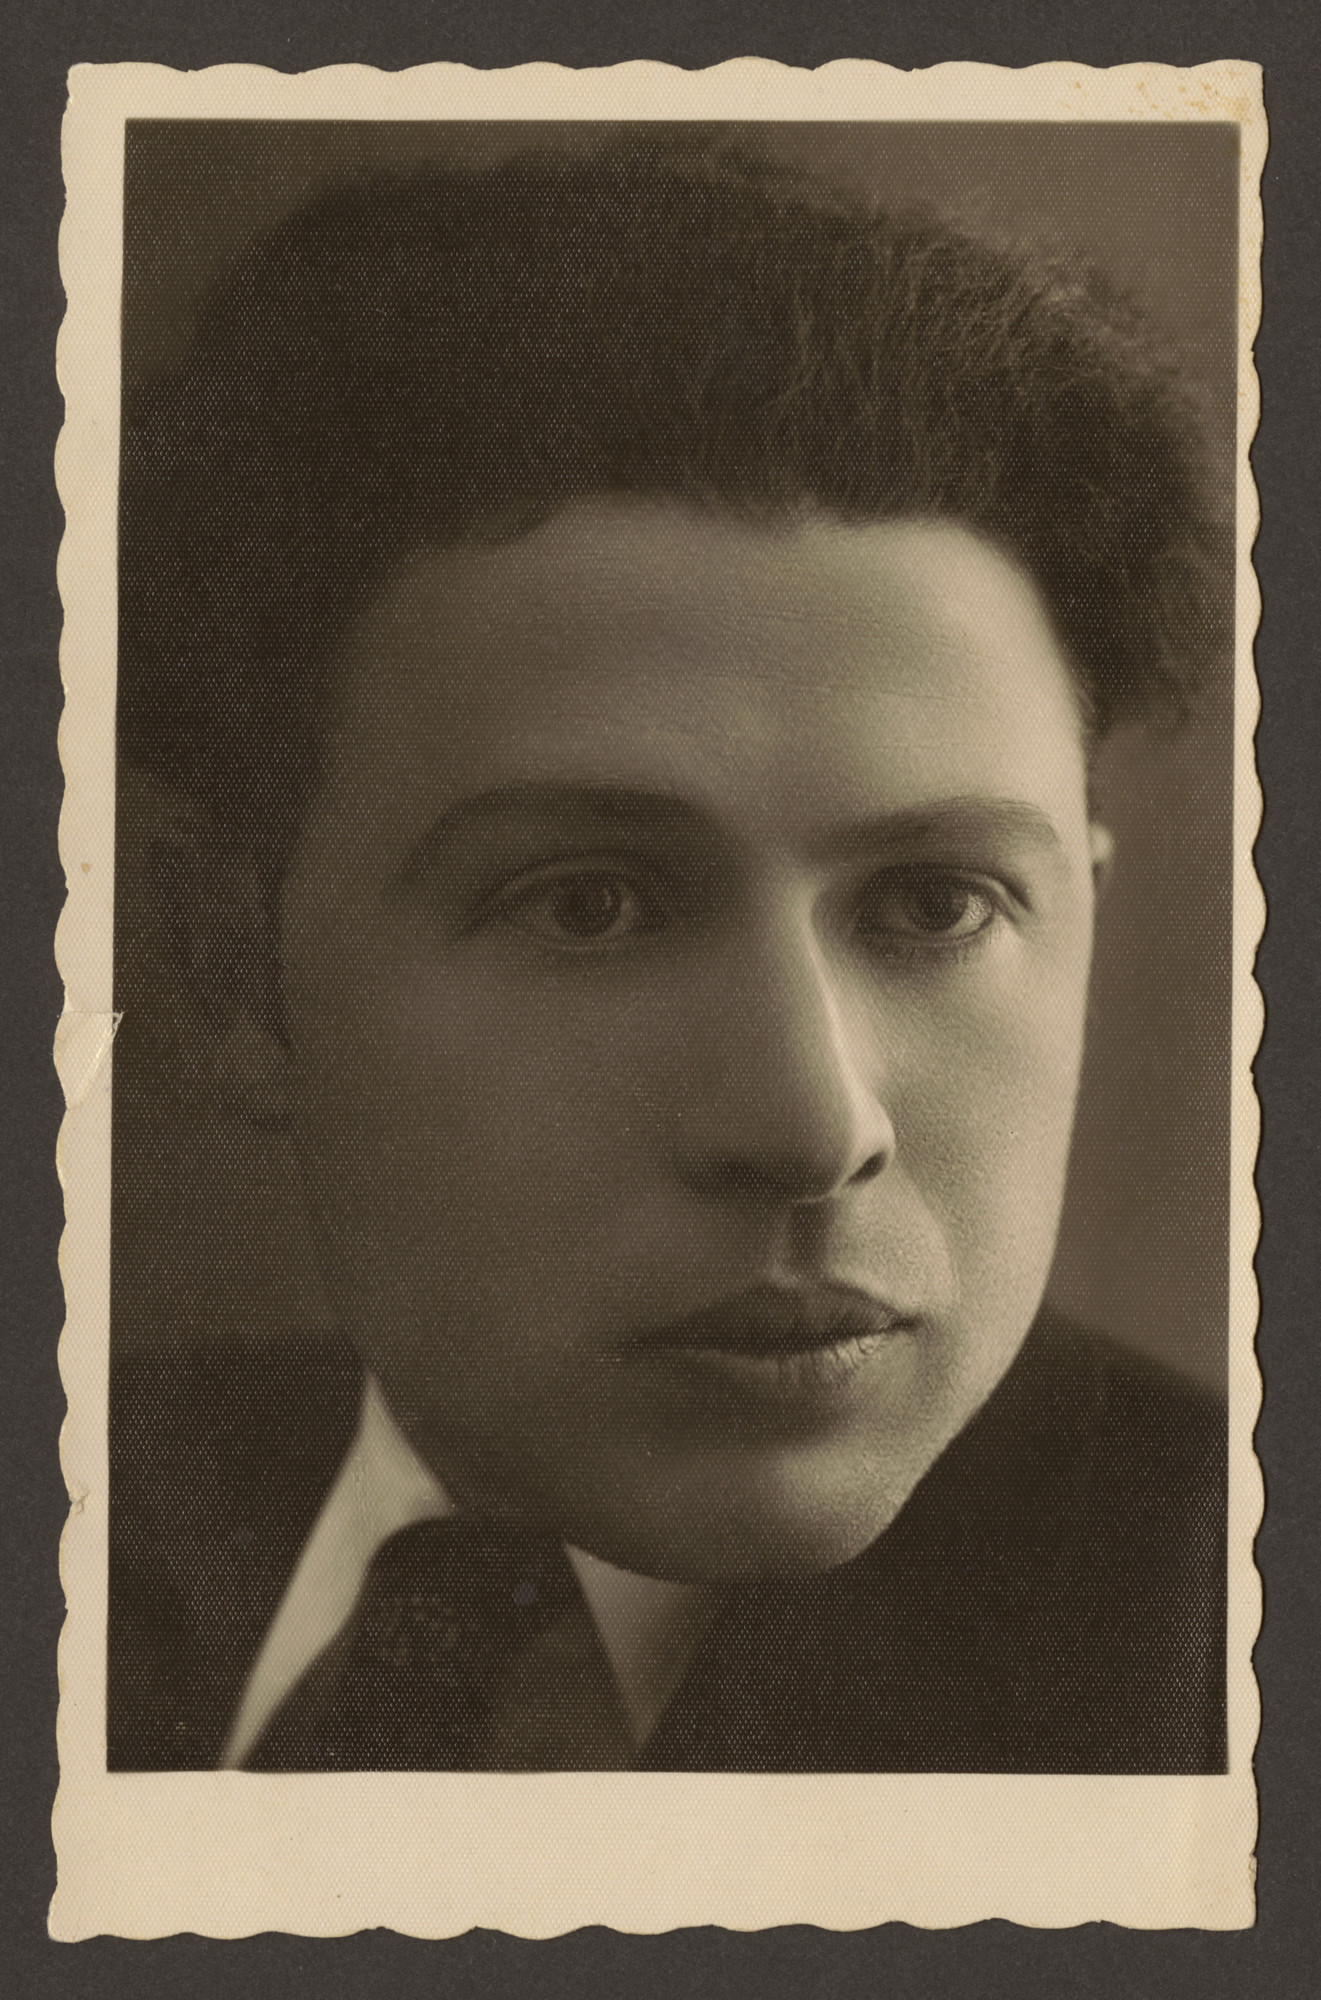 Studio portrait of mother's brother Yehoshua Blacher who was murdered in the Slobodka Yeshiva Pogrom in June 1941.